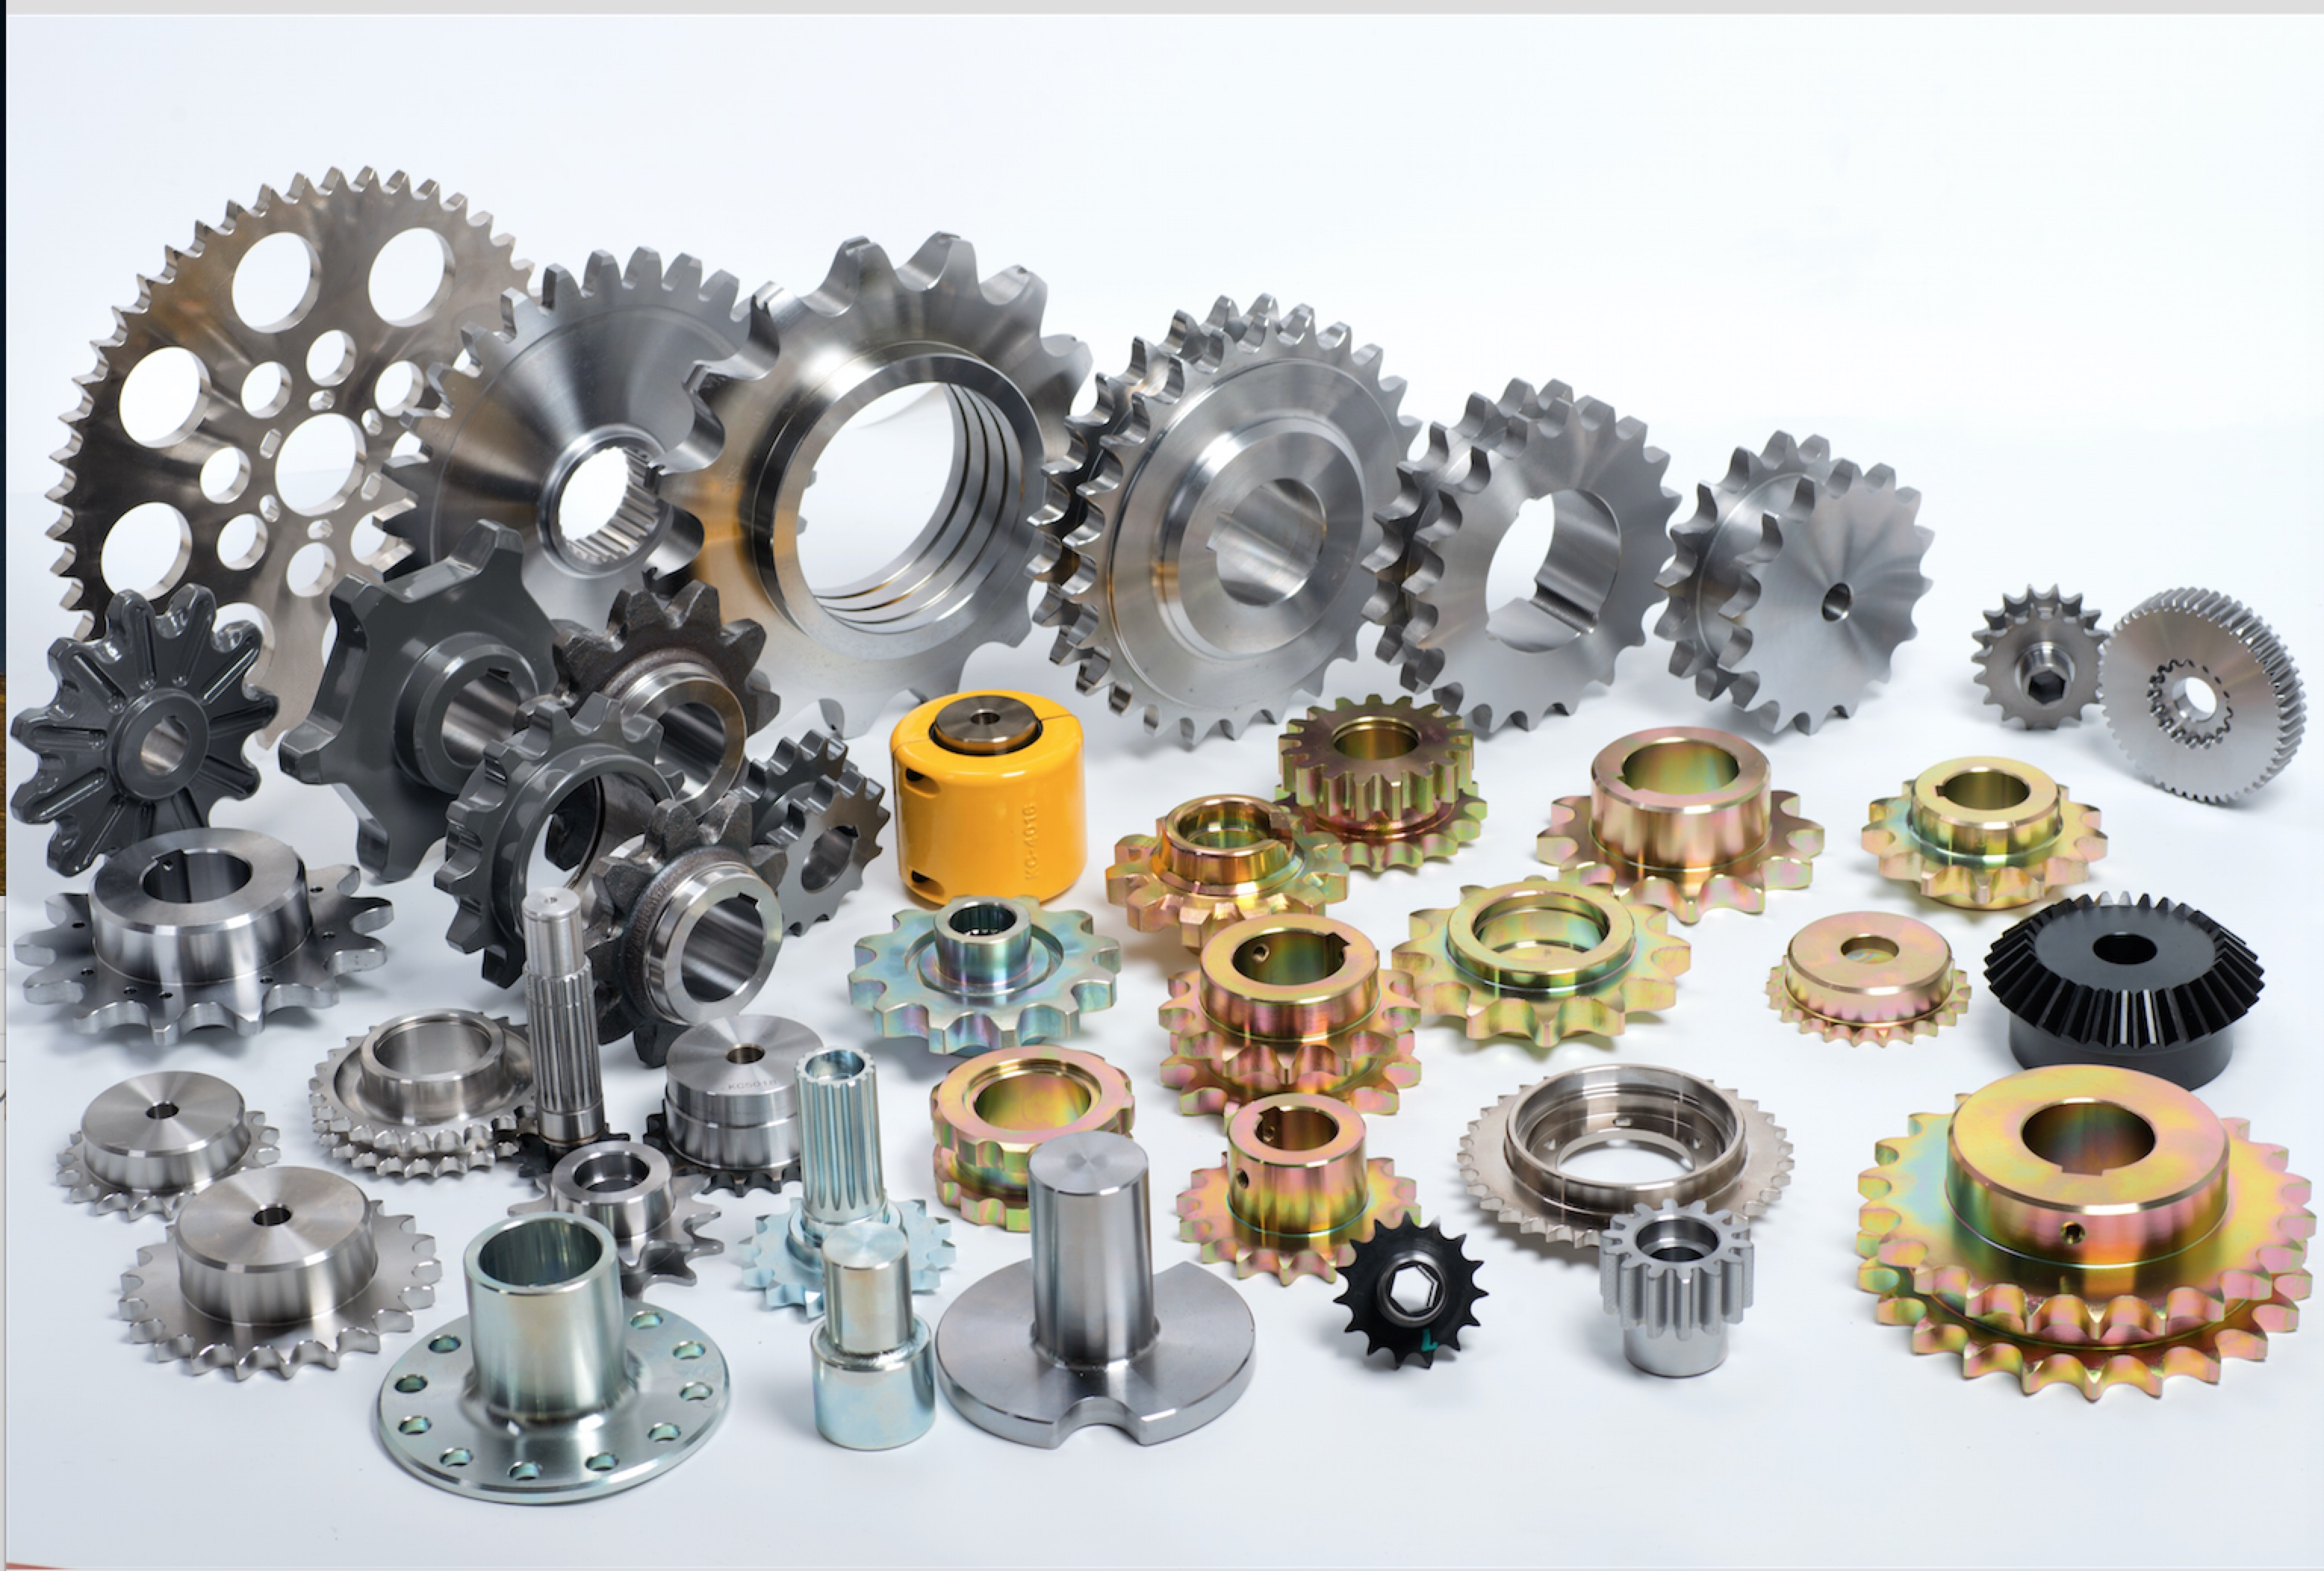 Sprocket,gear,chain coupling and flange